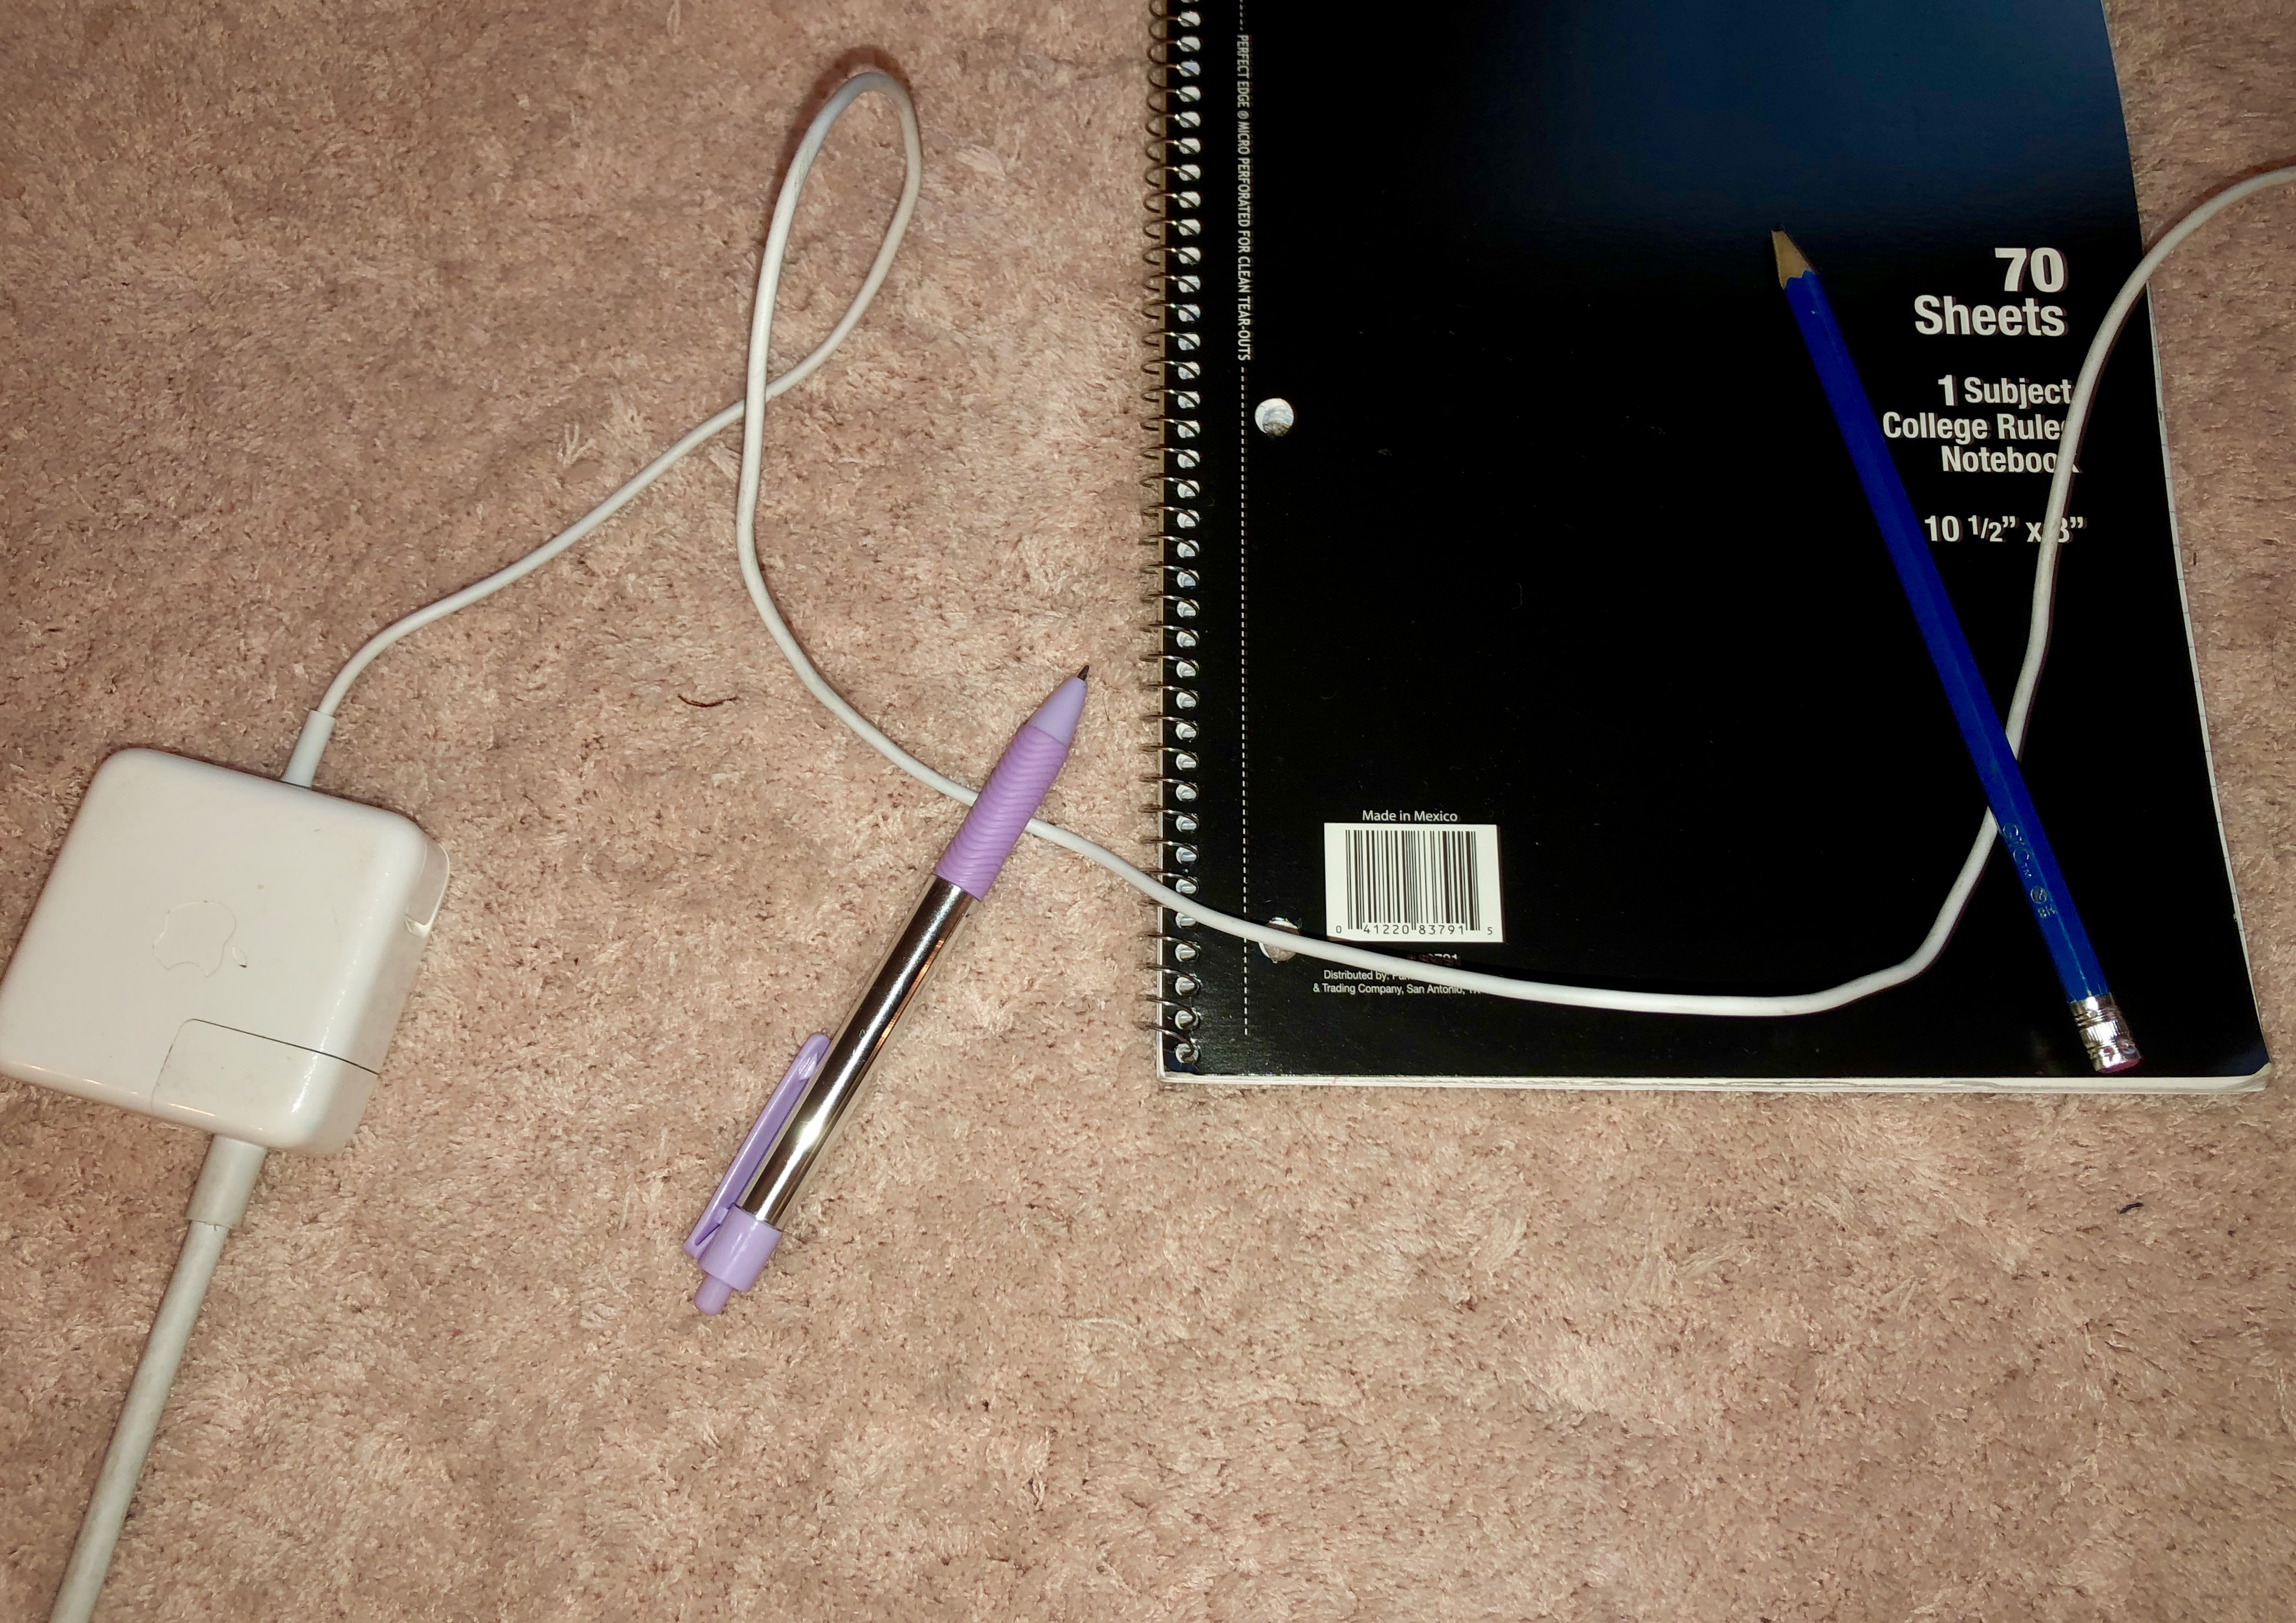 A white laptop charger next to a purple pen, black notebook and blue pencil.